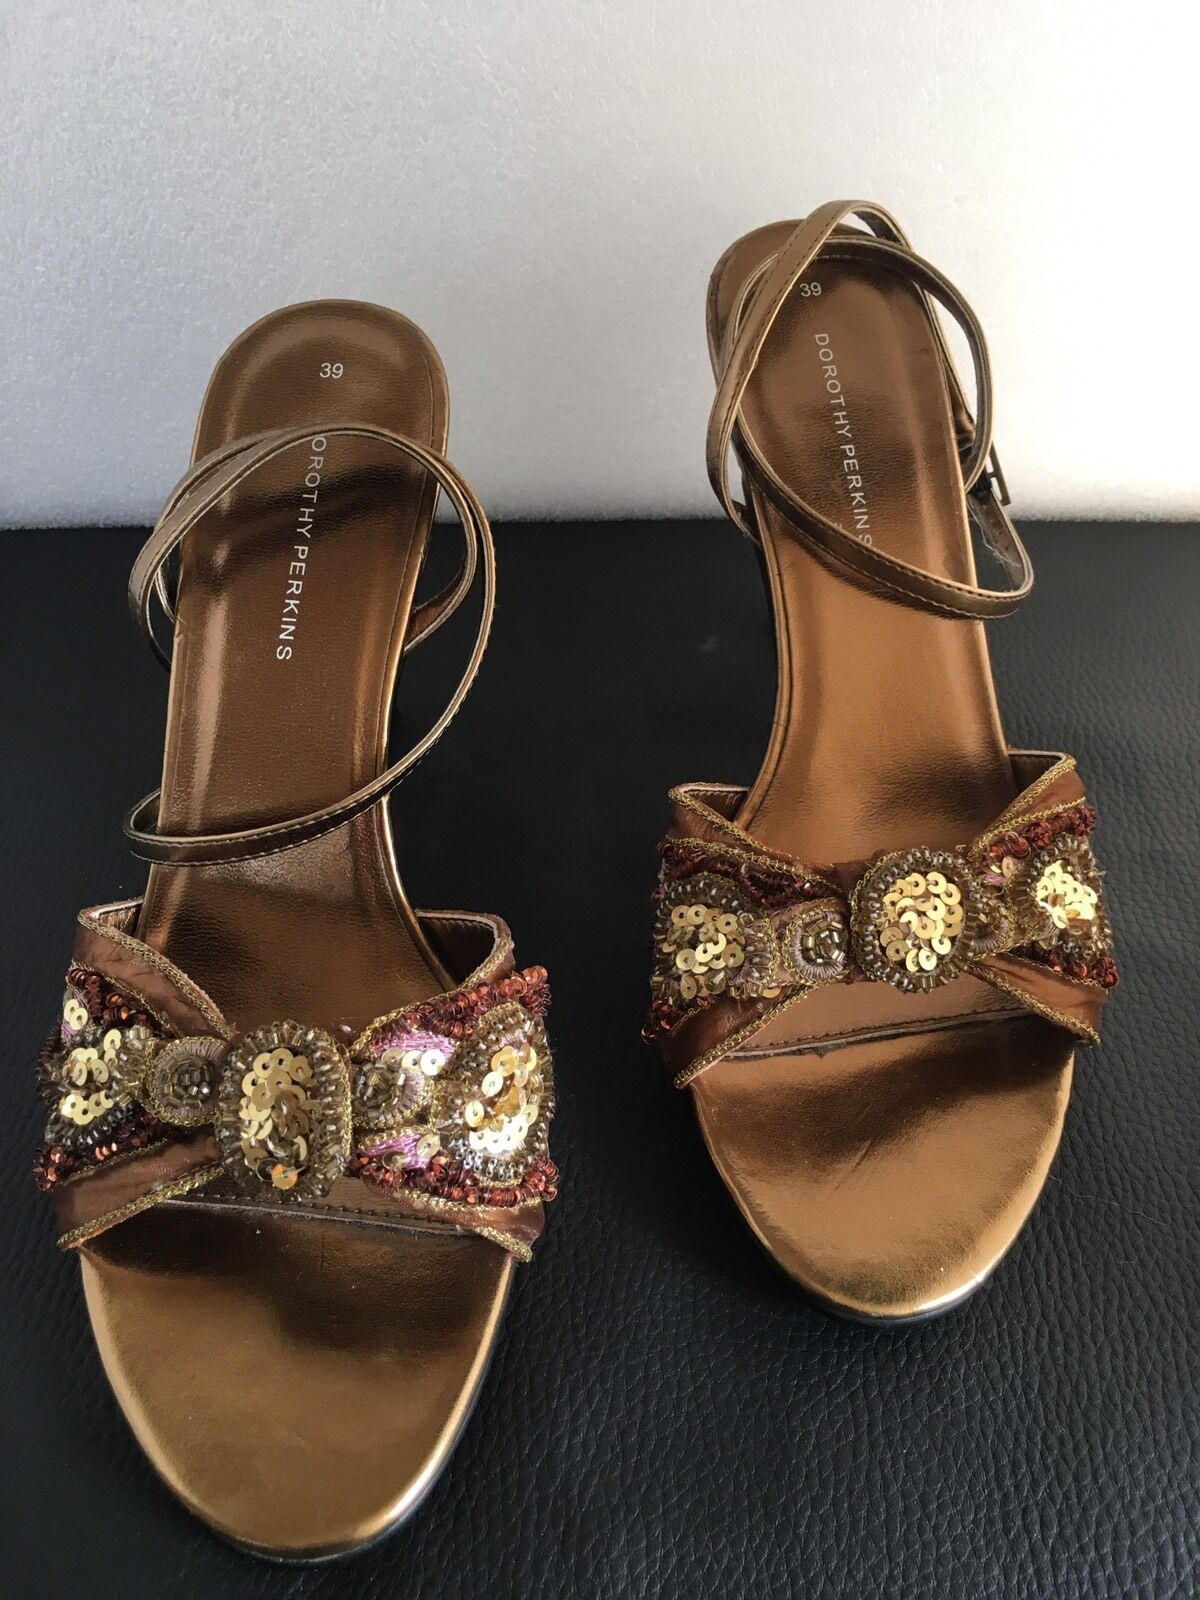 Ladies Dorothy Perkins Gold with Sequins Sandals Size 6(39)